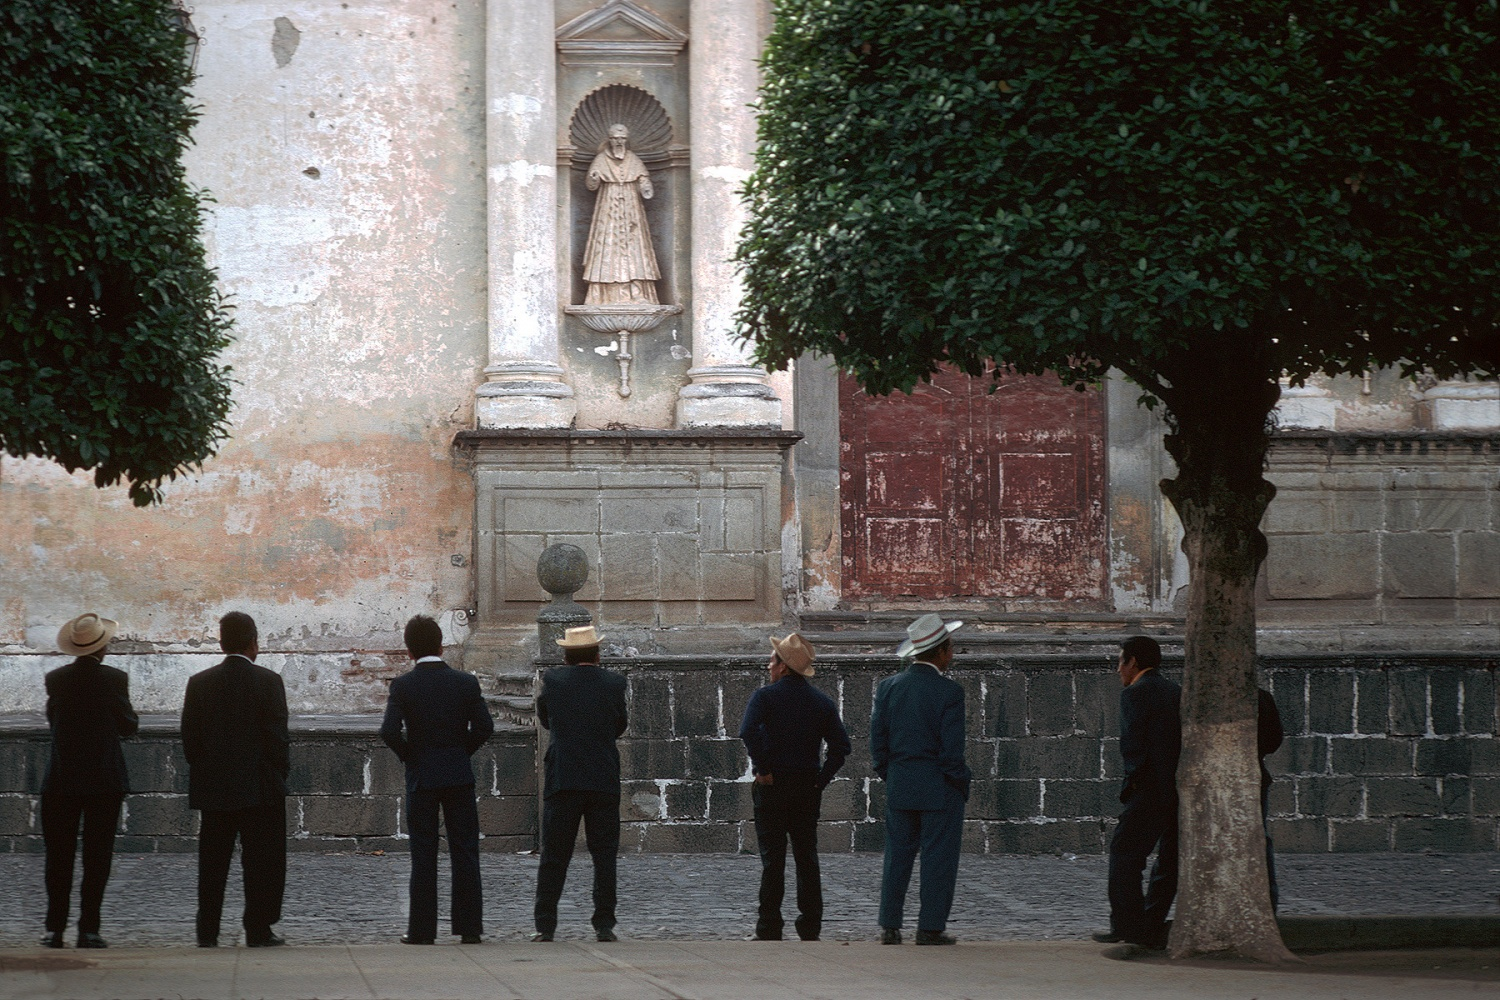 churchmen Church Men, 